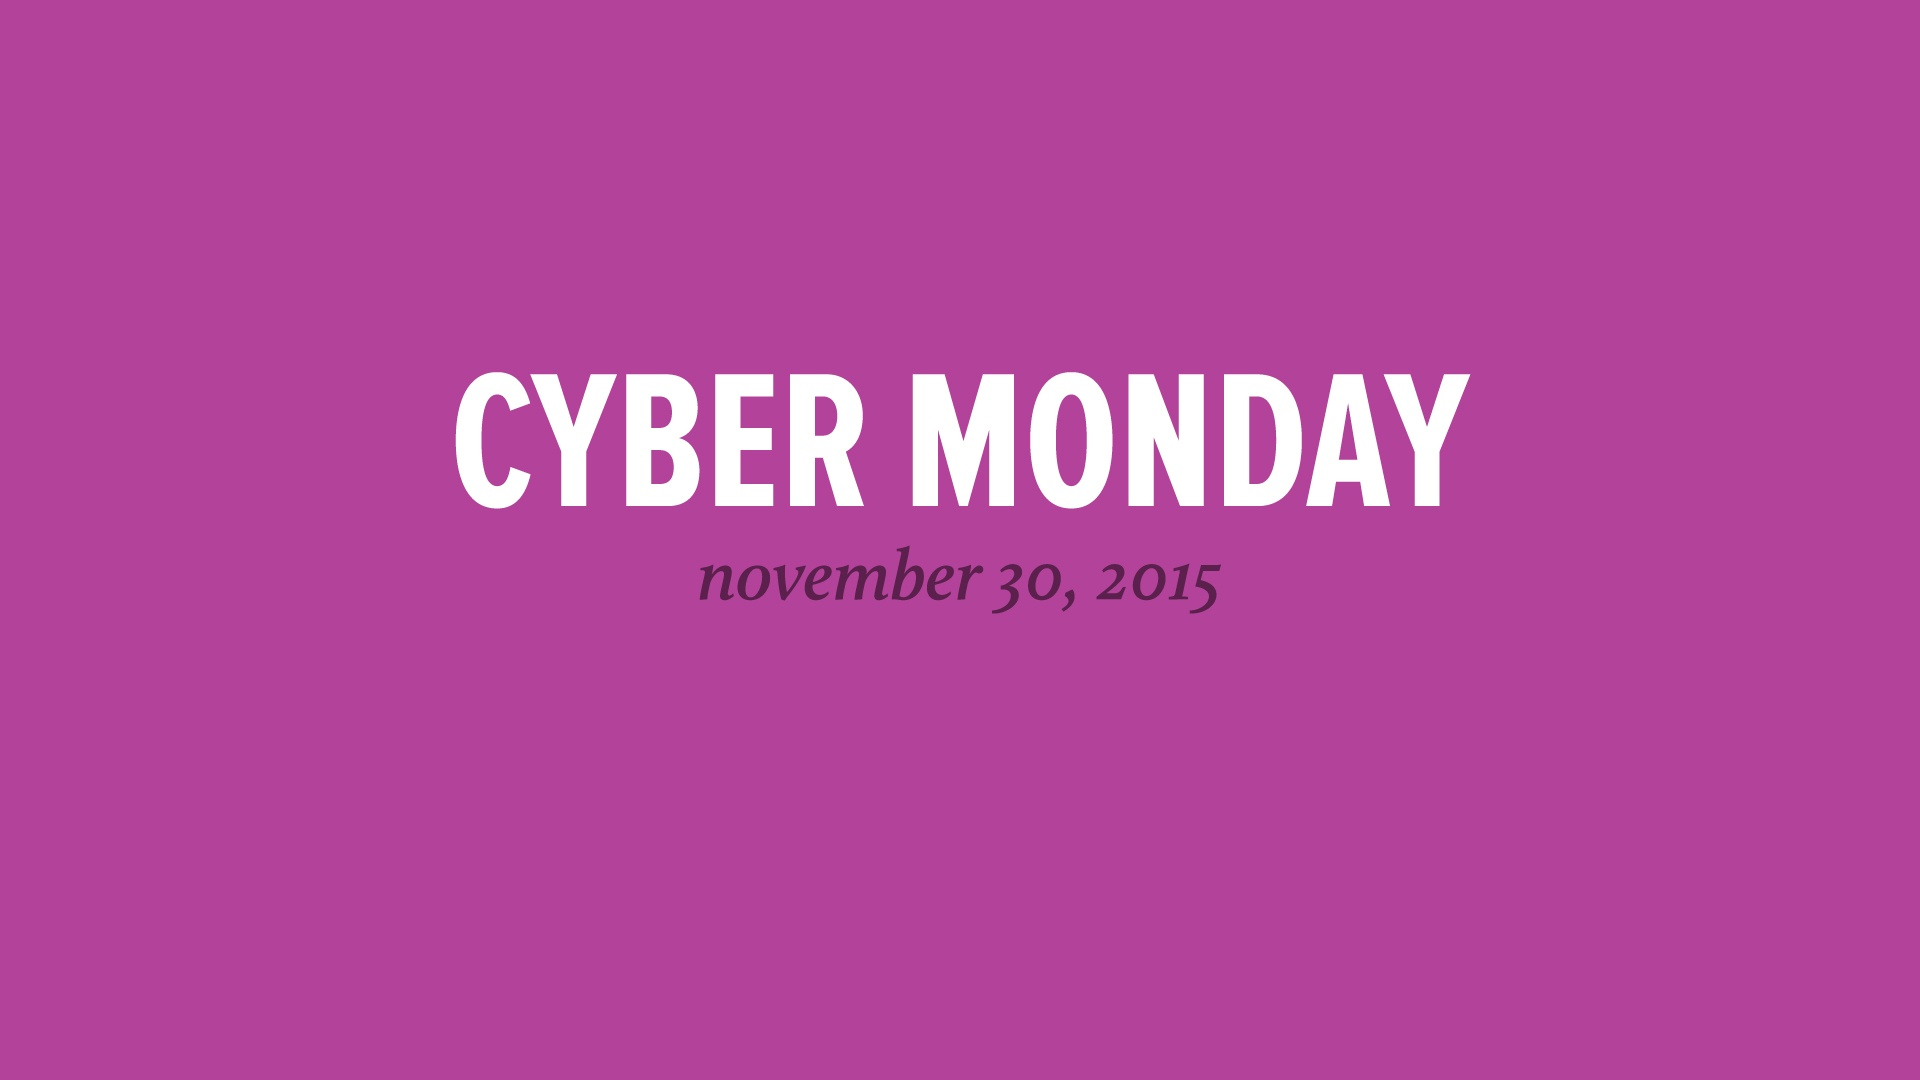 Wistia video thumbnail - Cyber Monday 2015